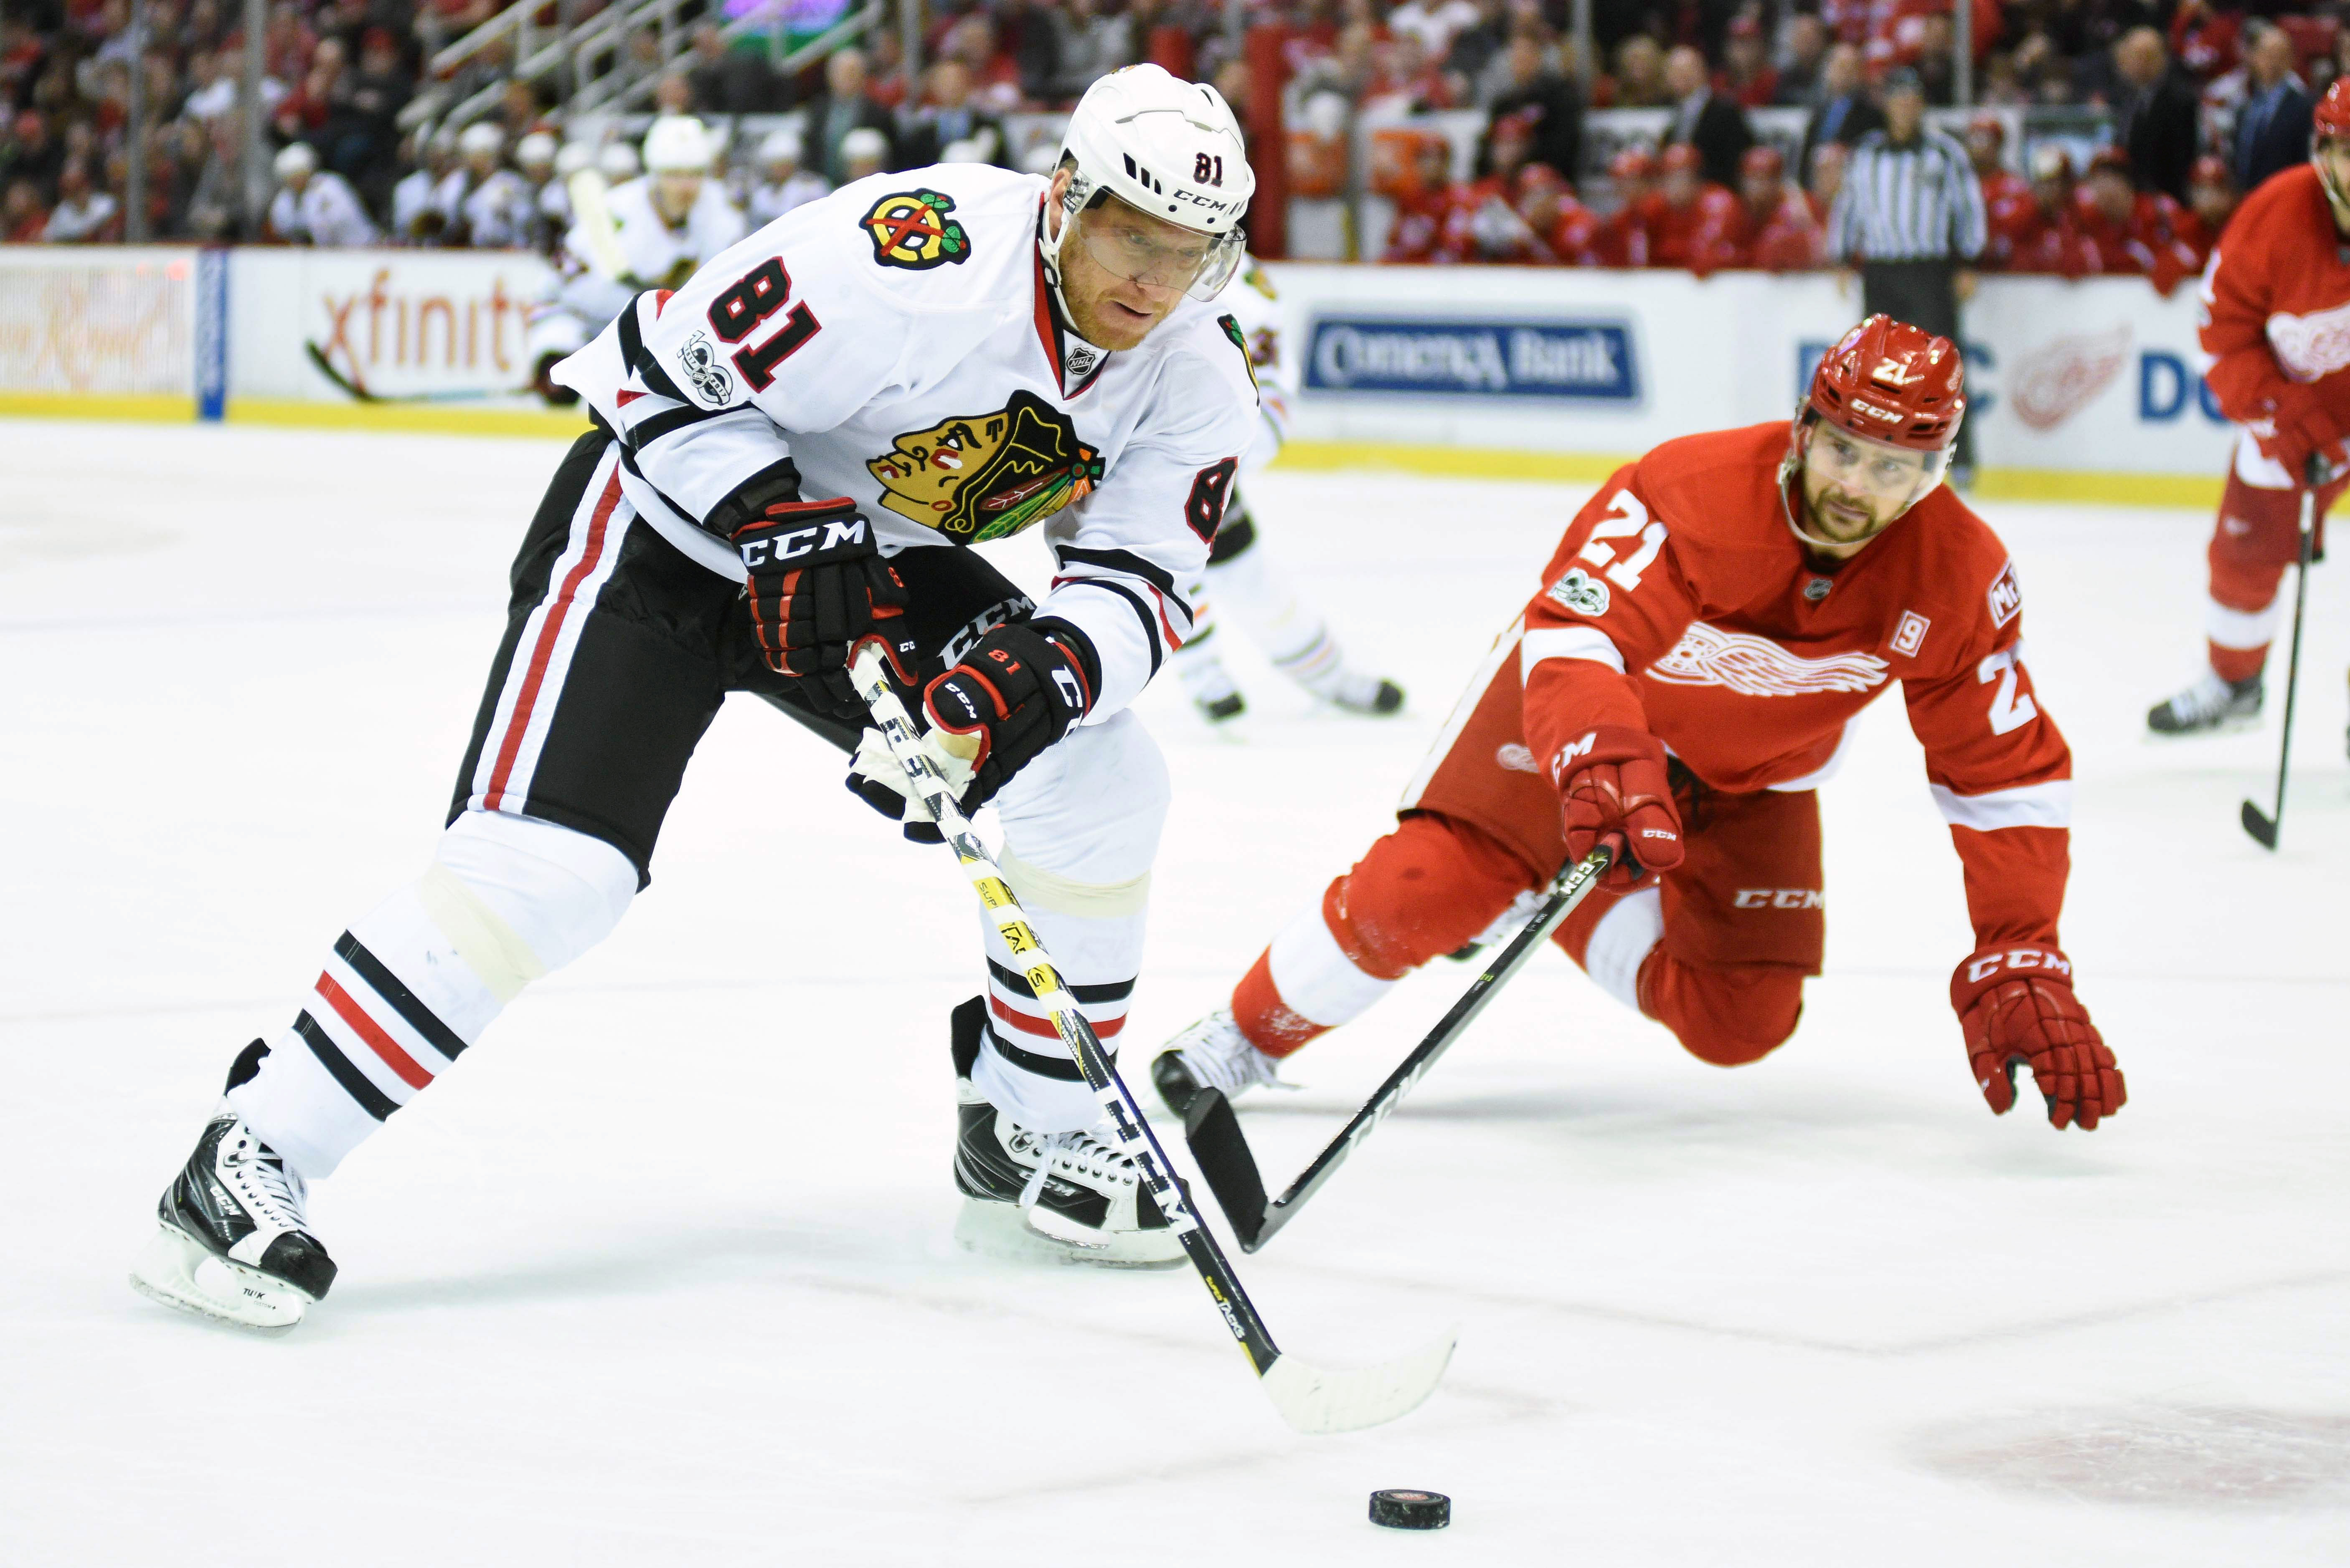 9932501-nhl-chicago-blackhawks-at-detroit-red-wings